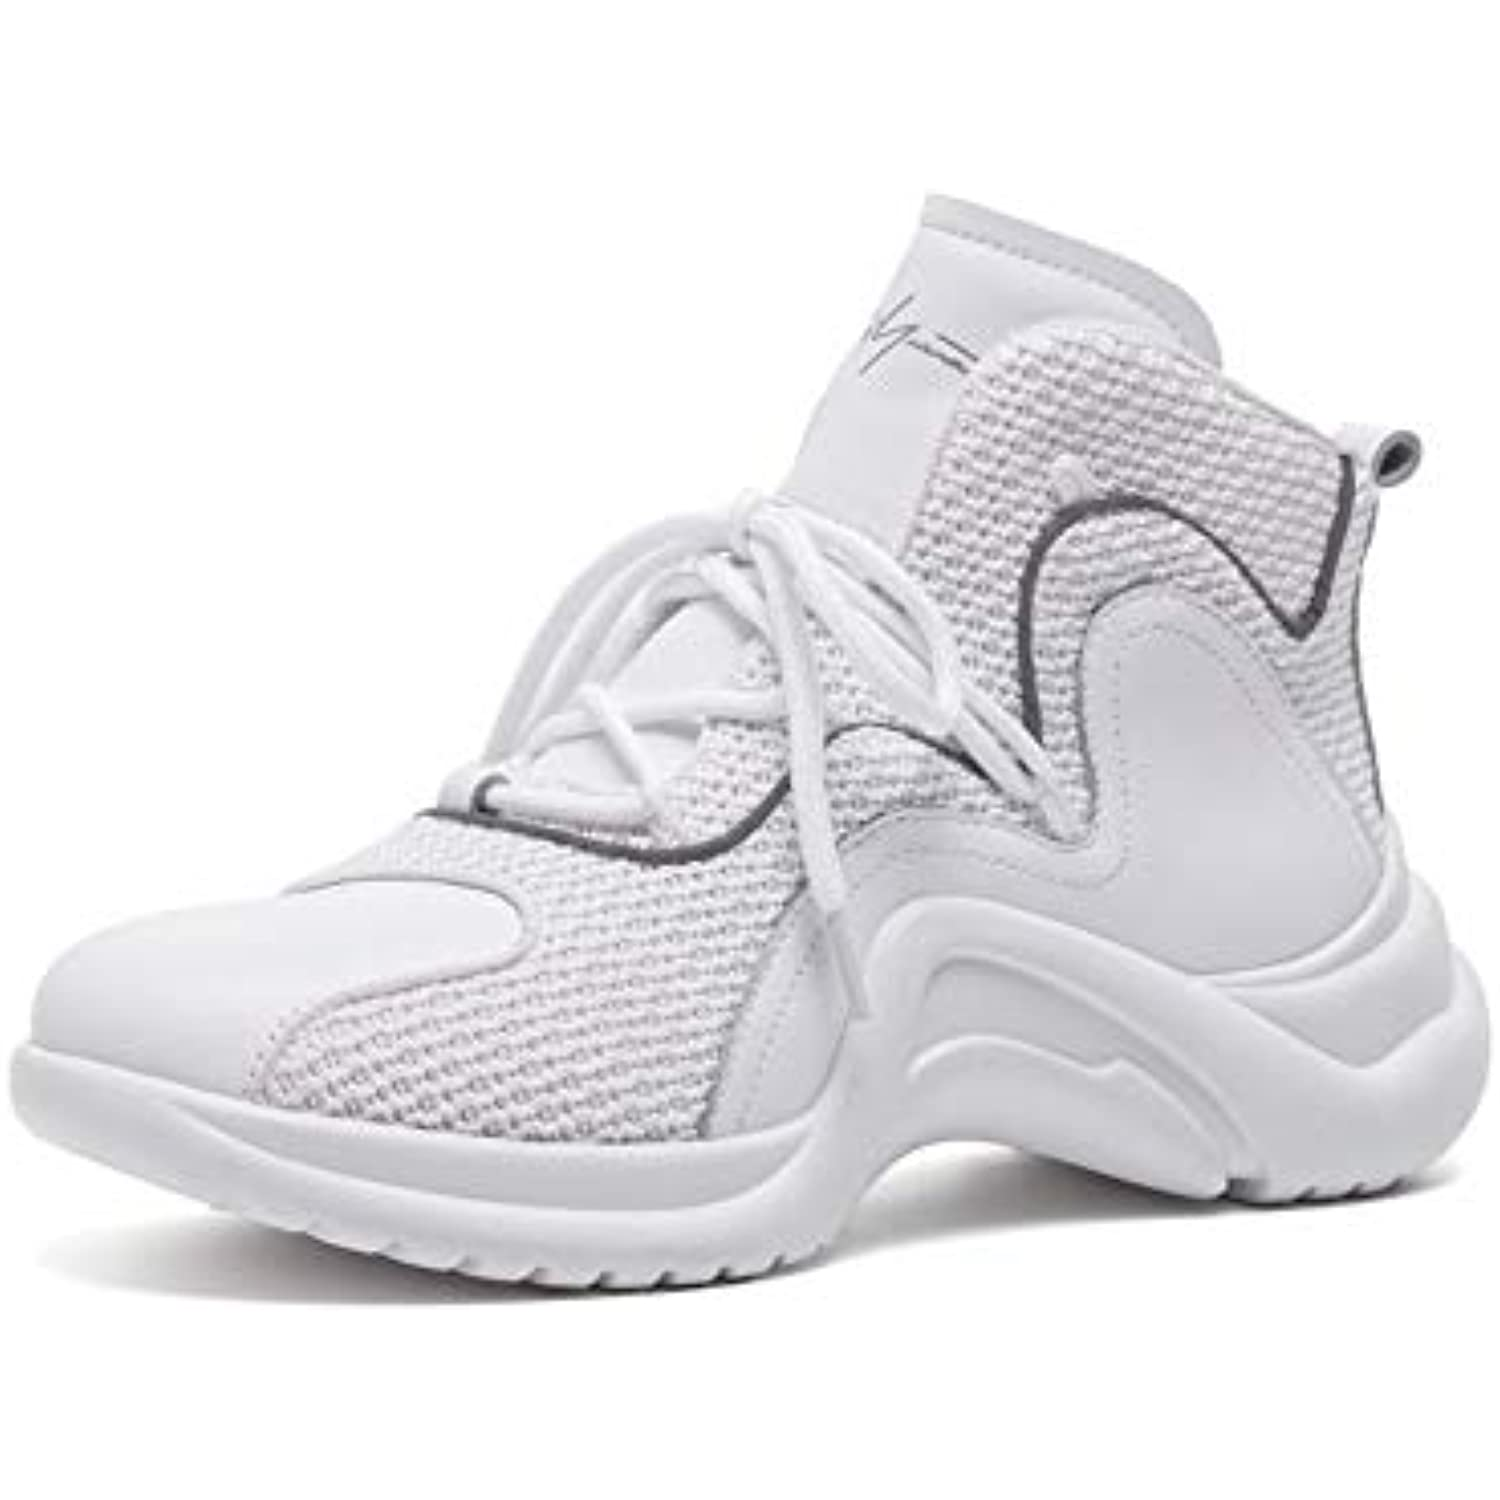 Shirloy Petites Chaussures Blanches Muffins Bas Cuir dentelbottes Femmes confortaboccasionnels Chaussures... Mailles Chaussures... confortaboccasionnels - B07JXYRX2R - ef01d1